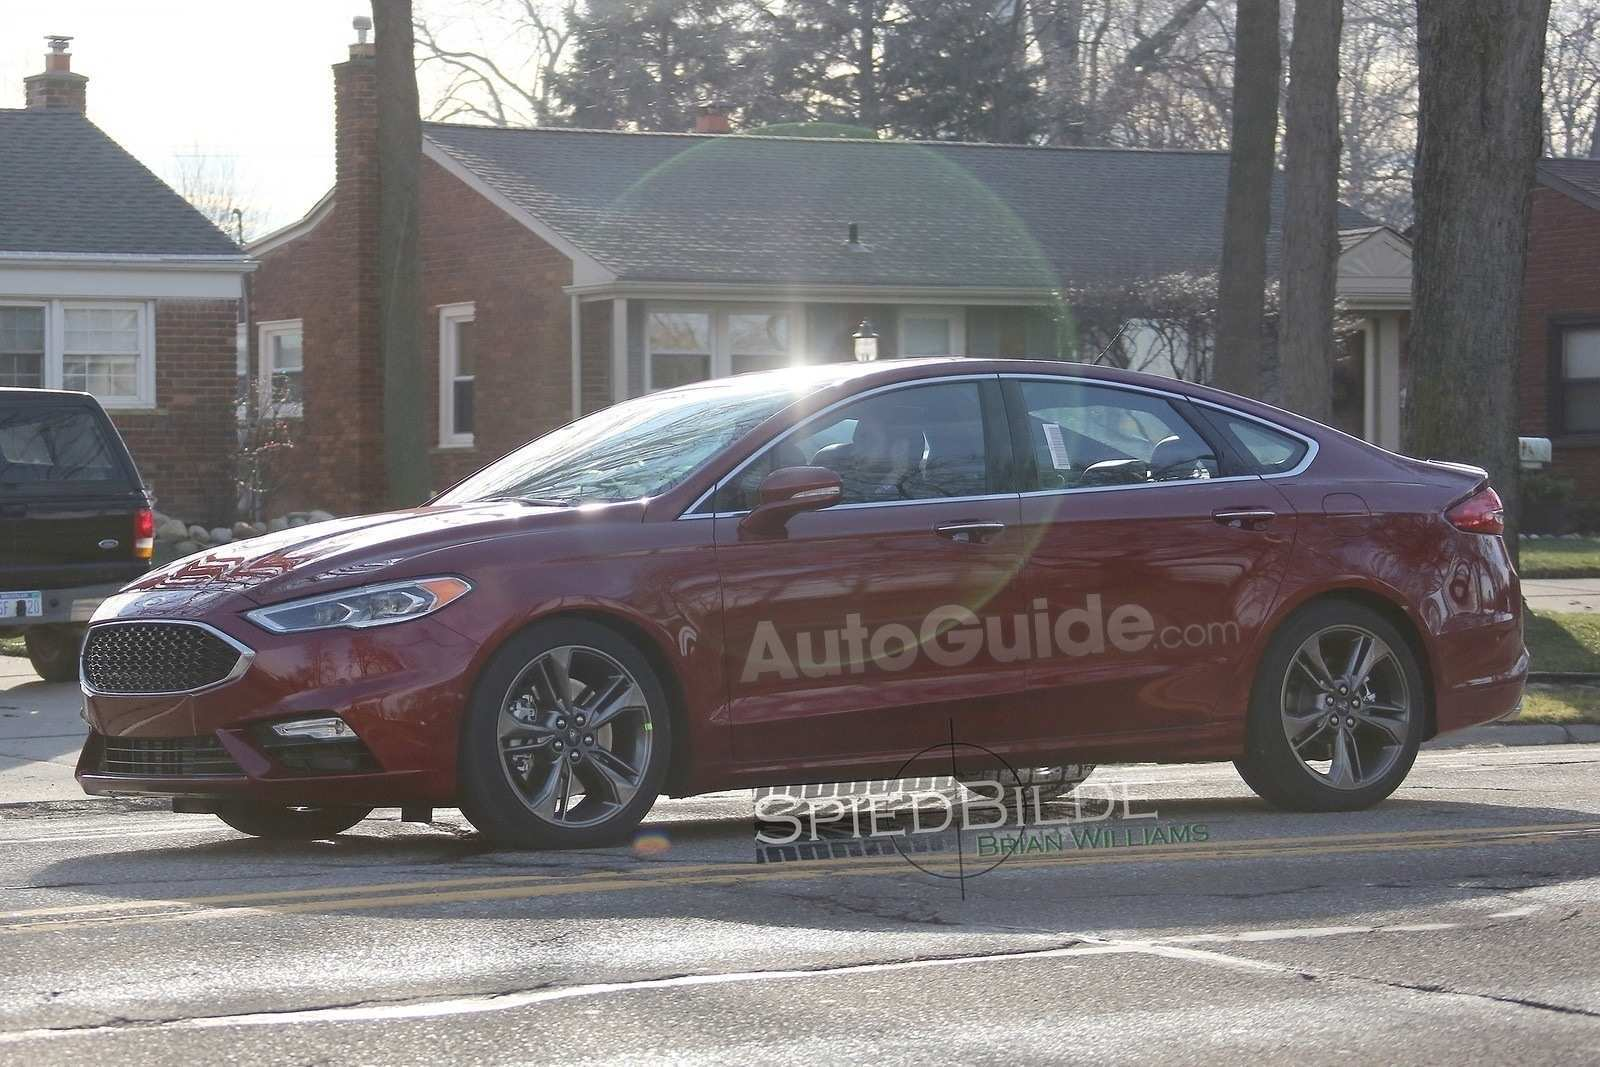 87 All New Spy Shots Ford Fusion Concept And Review